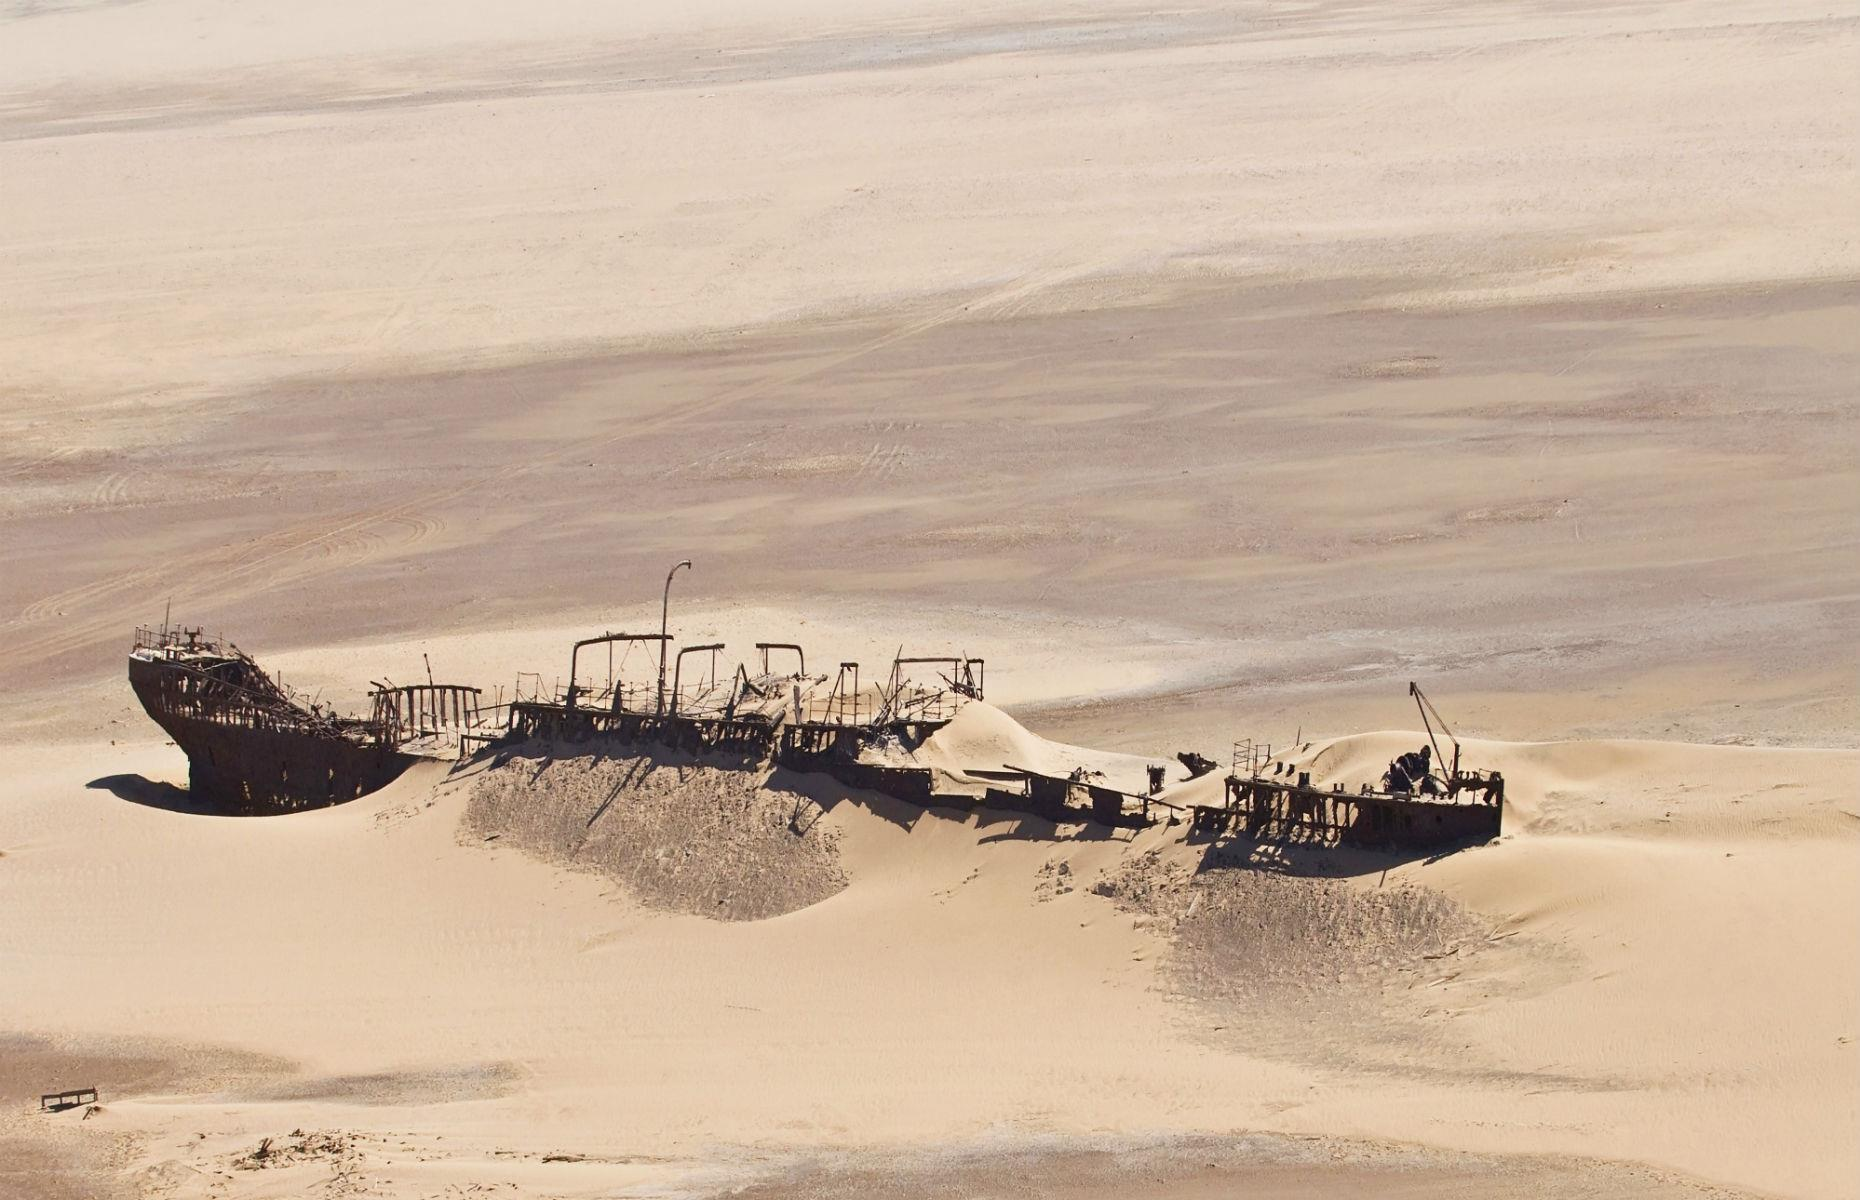 Slide 6 of 64: Namibia has little shortage of haunting shipwrecks, with hundreds of them scattered along the country's sparse Skeleton Coast. One of the most striking is Eduard Bohlen, a German cargo ship that ran aground in the early 20th century on its way from Swakopmund to South Africa's Table Bay.